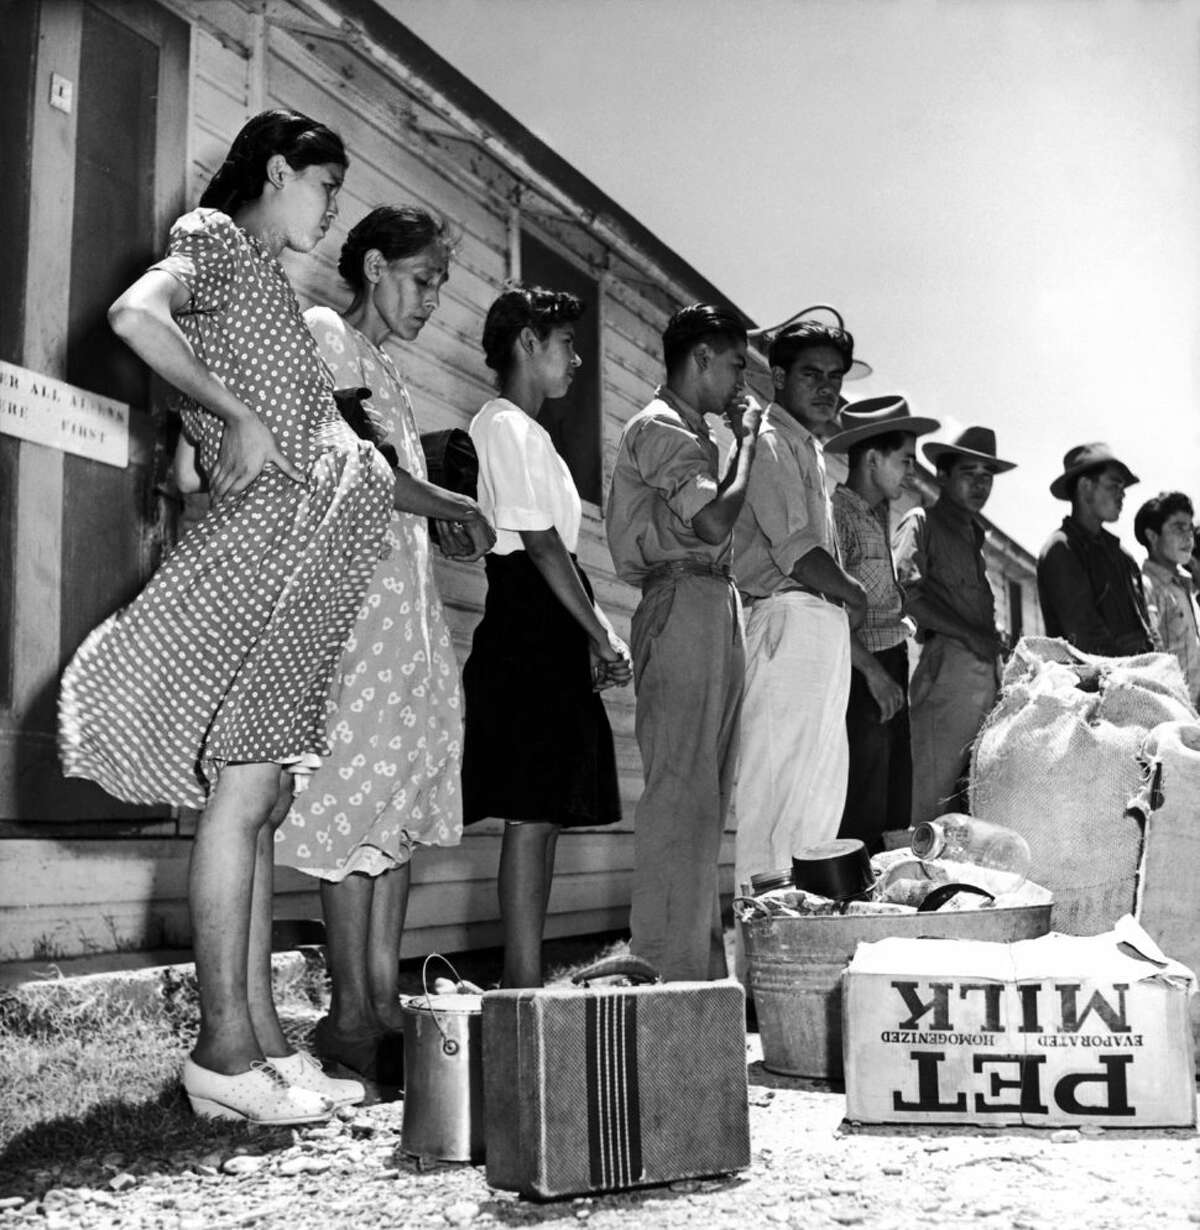 The U.S.-Mexico border wall over the years Migrants, including a pregnant woman, wait for inspection to cross the U.S.-Mexico border, circa 1950s.